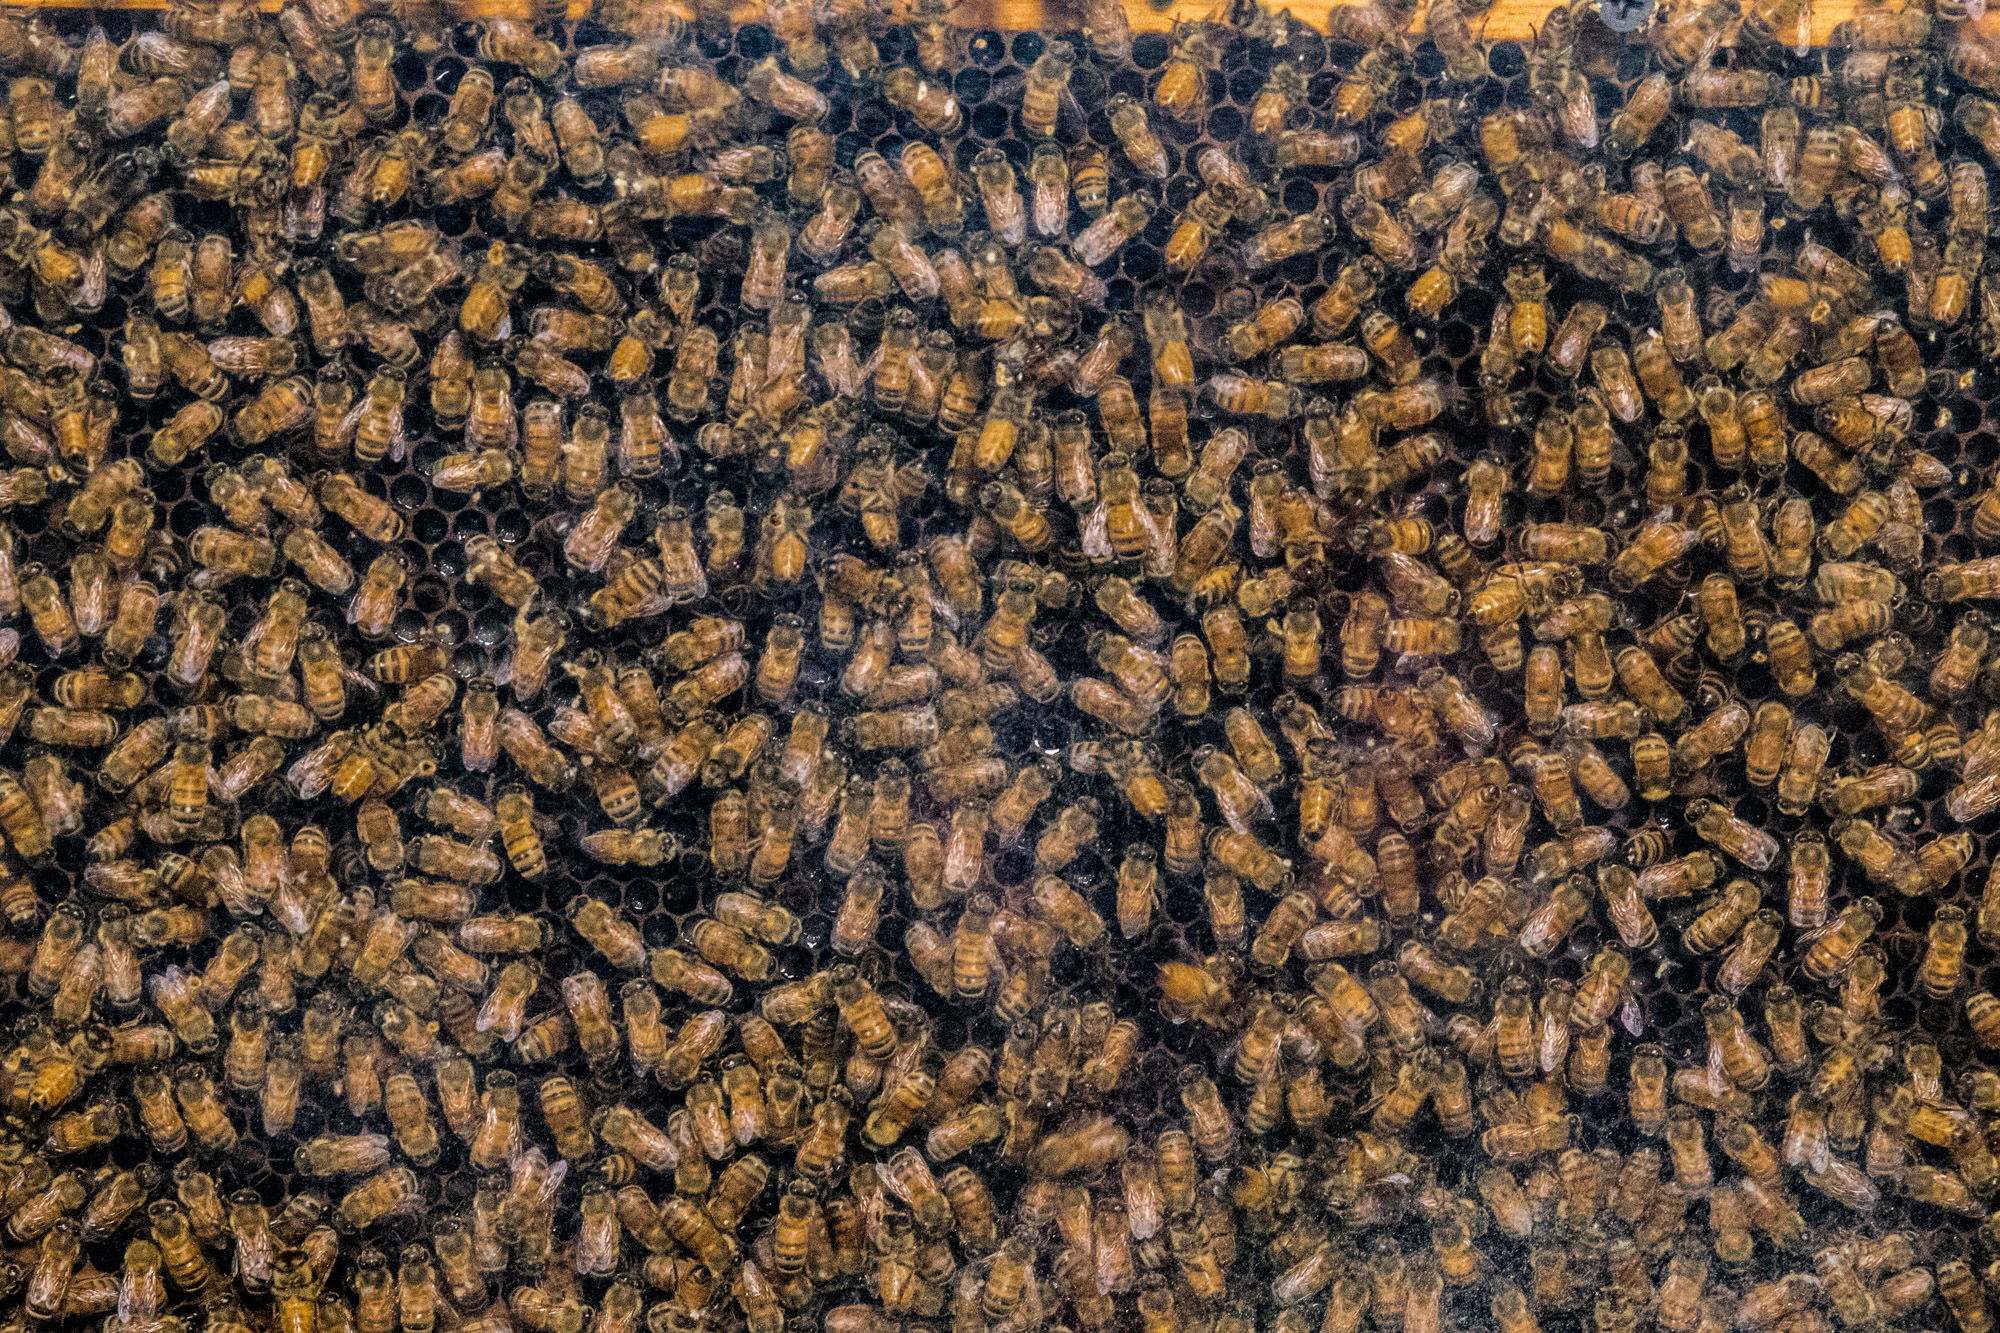 A colony of bees on display at the Los Angeles Natural History Museums 32nd annual Bug Fair on May 19, 2018. (Zane Meyer-Thornton/Corsair Photo)